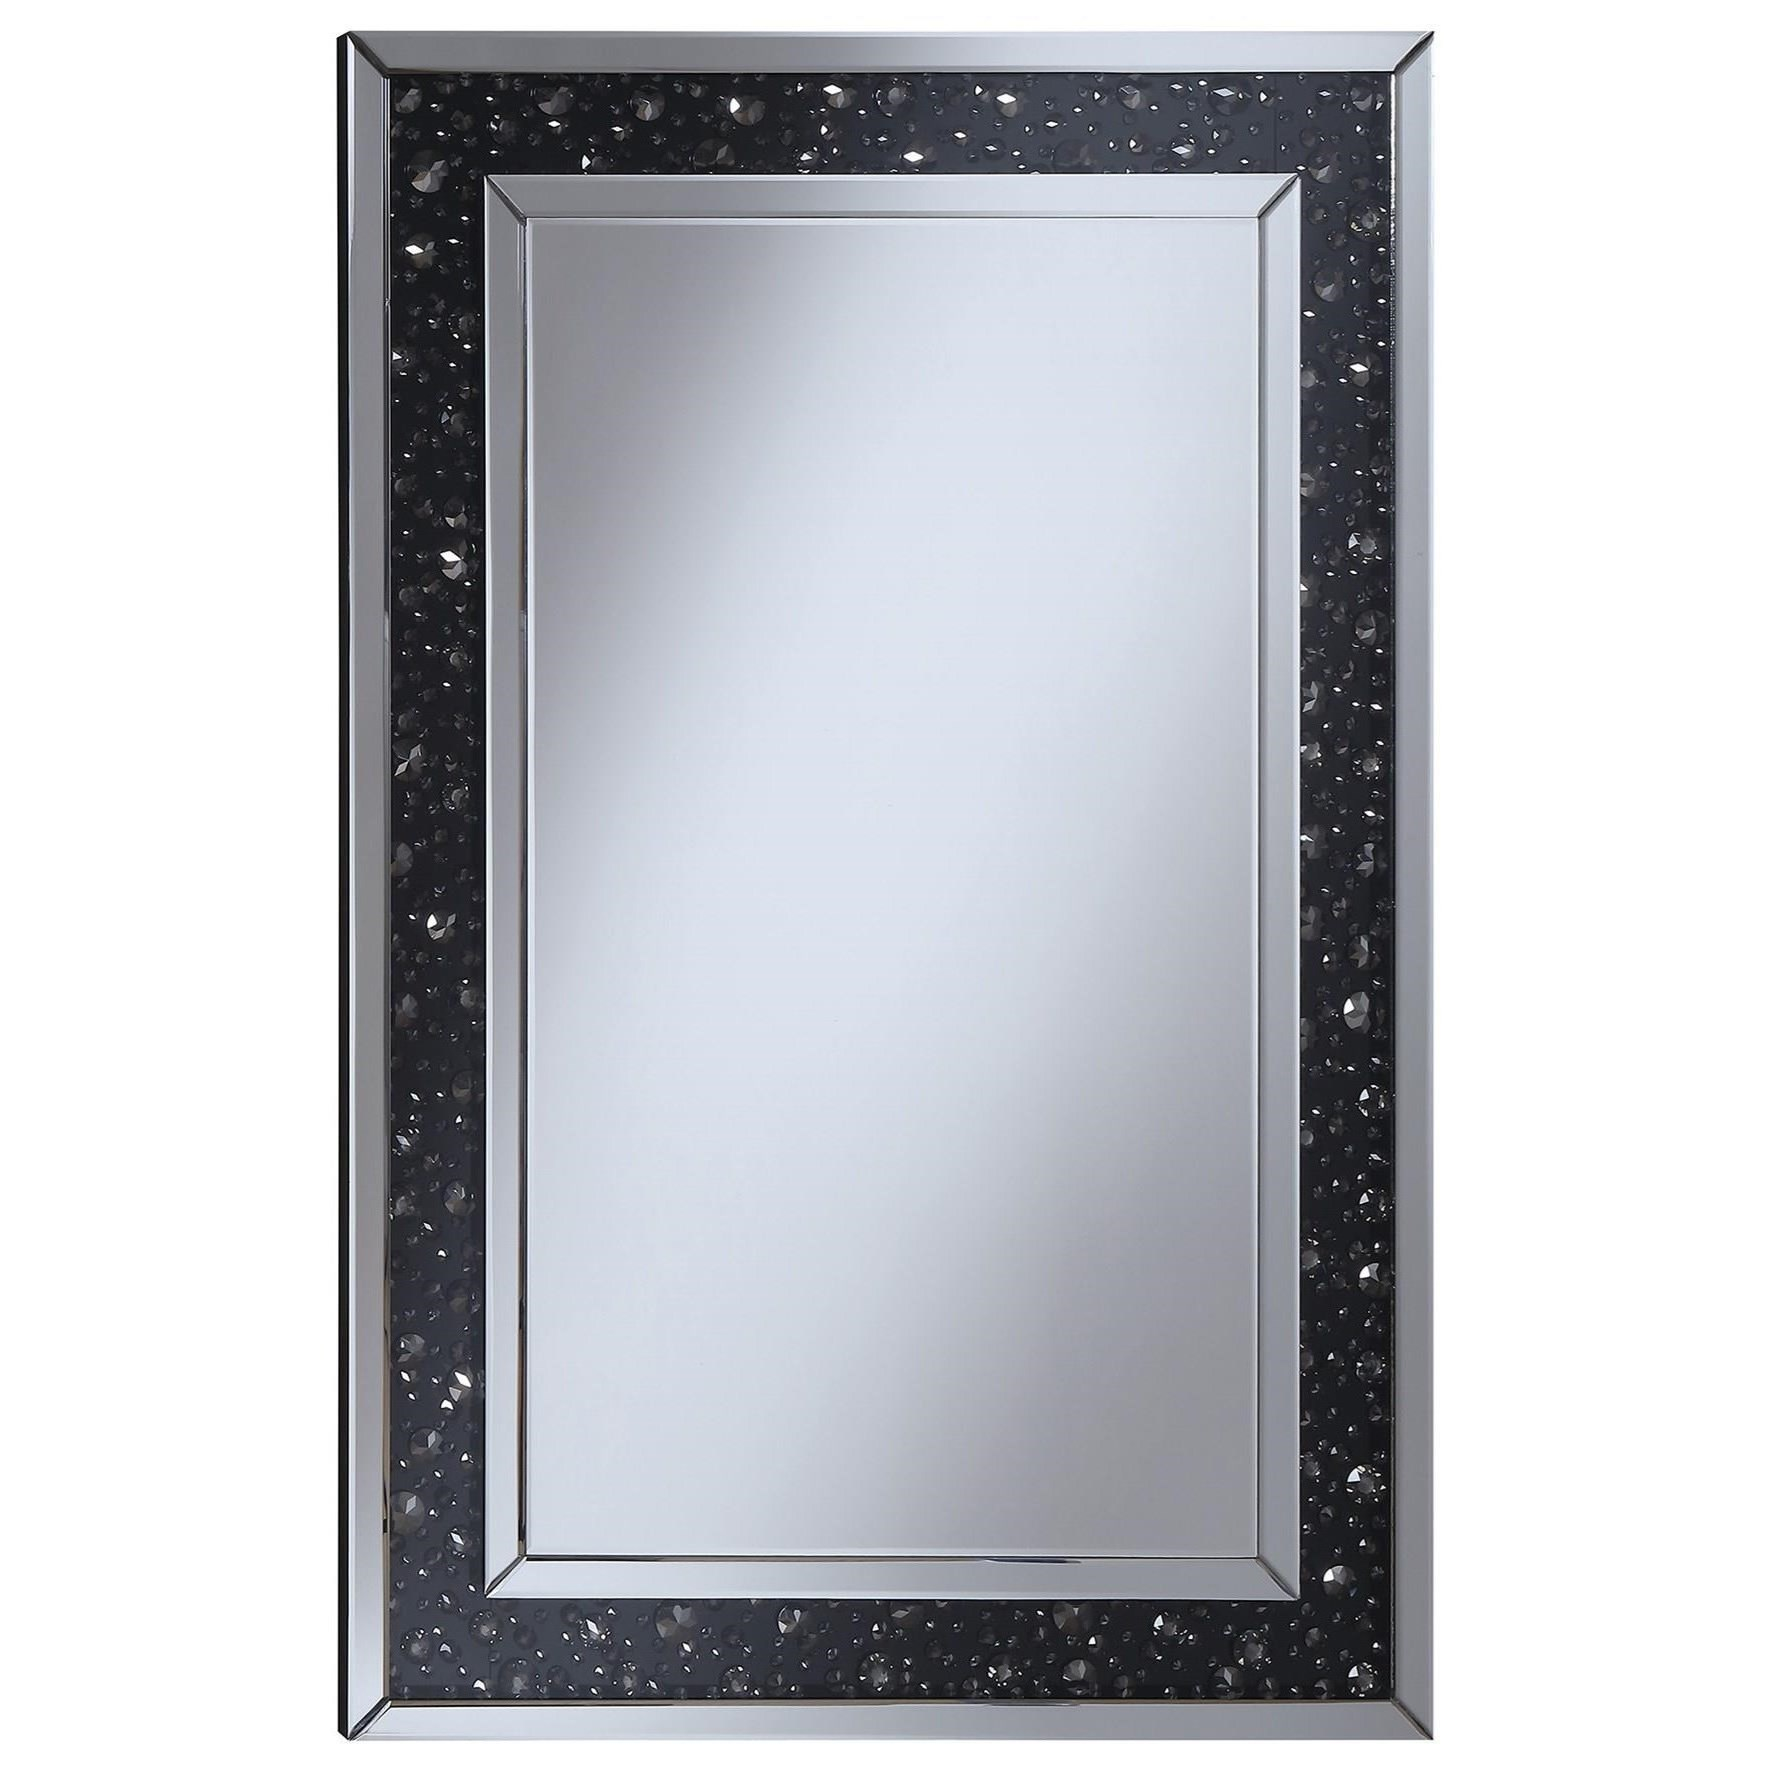 Coaster Accent Mirrors Wall Mirror - Item Number: 960090